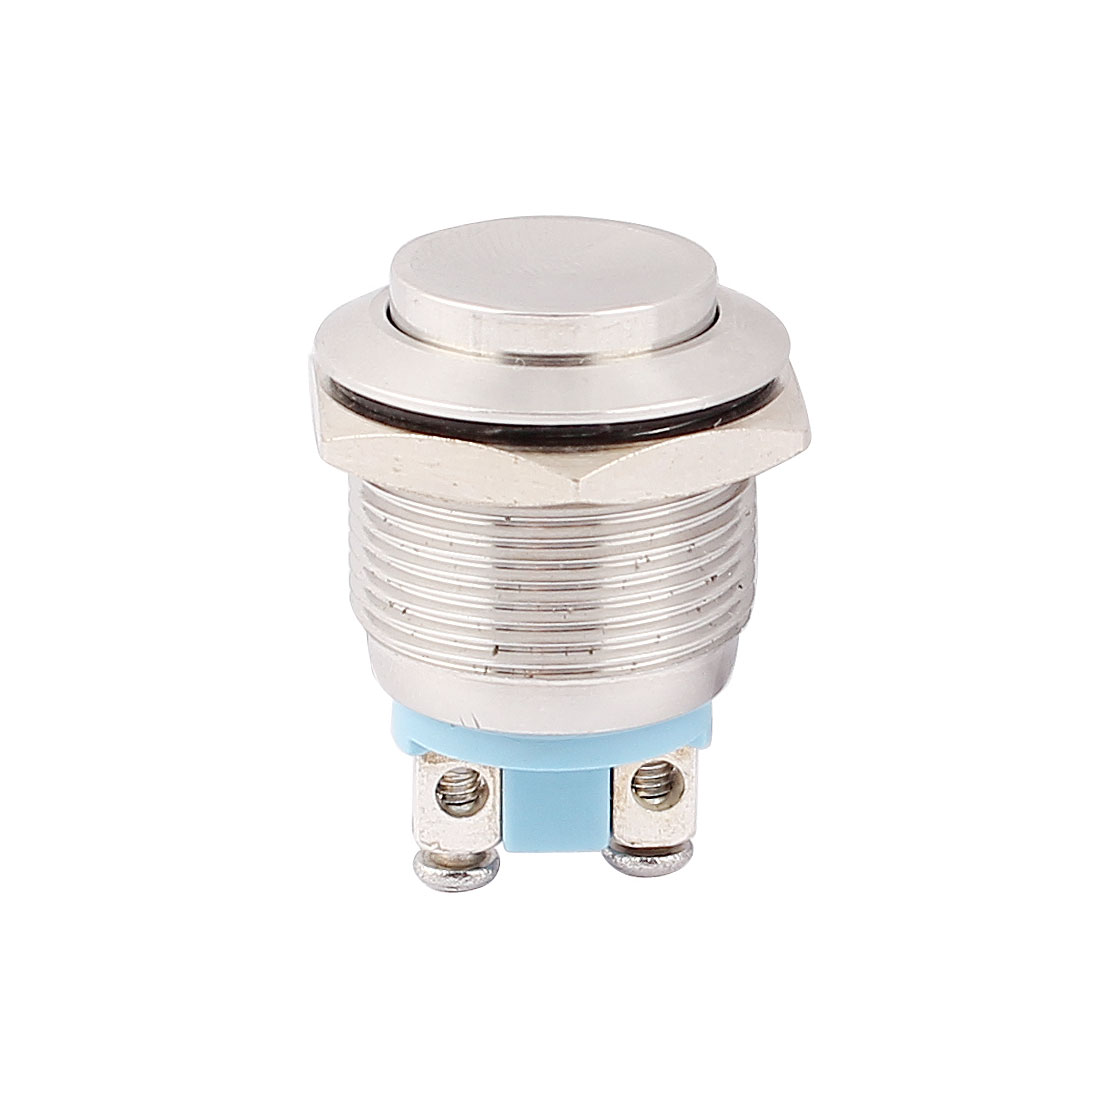 19mm Mounted Thread SPST High Head Self-Reset Push Button Switch